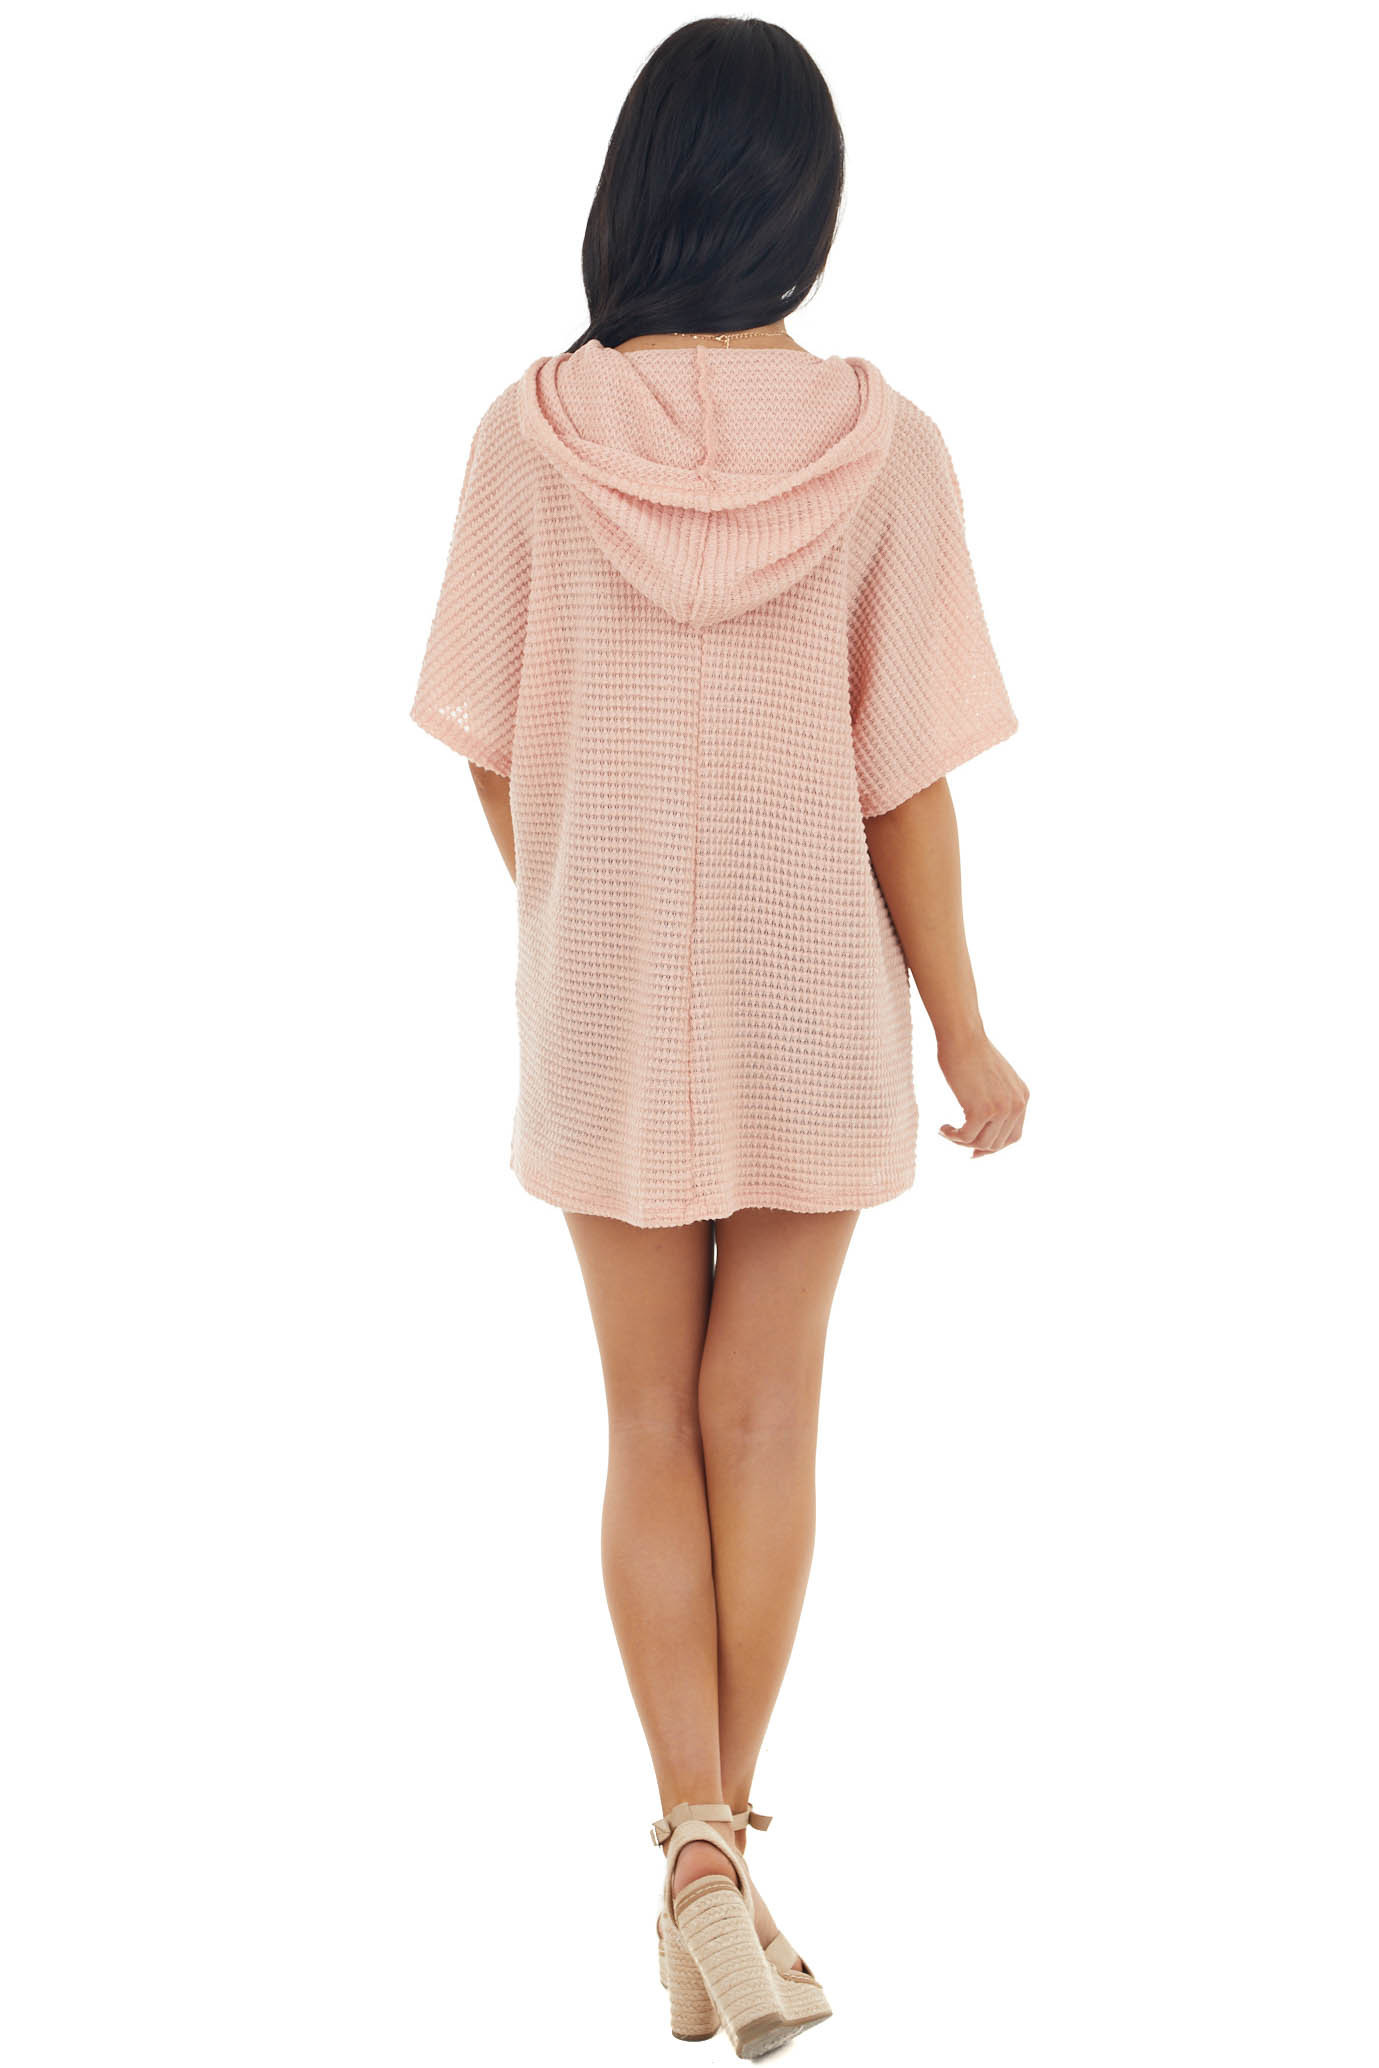 Coral Short Sleeve Waffle Knit Hooded Top with Drawstrings